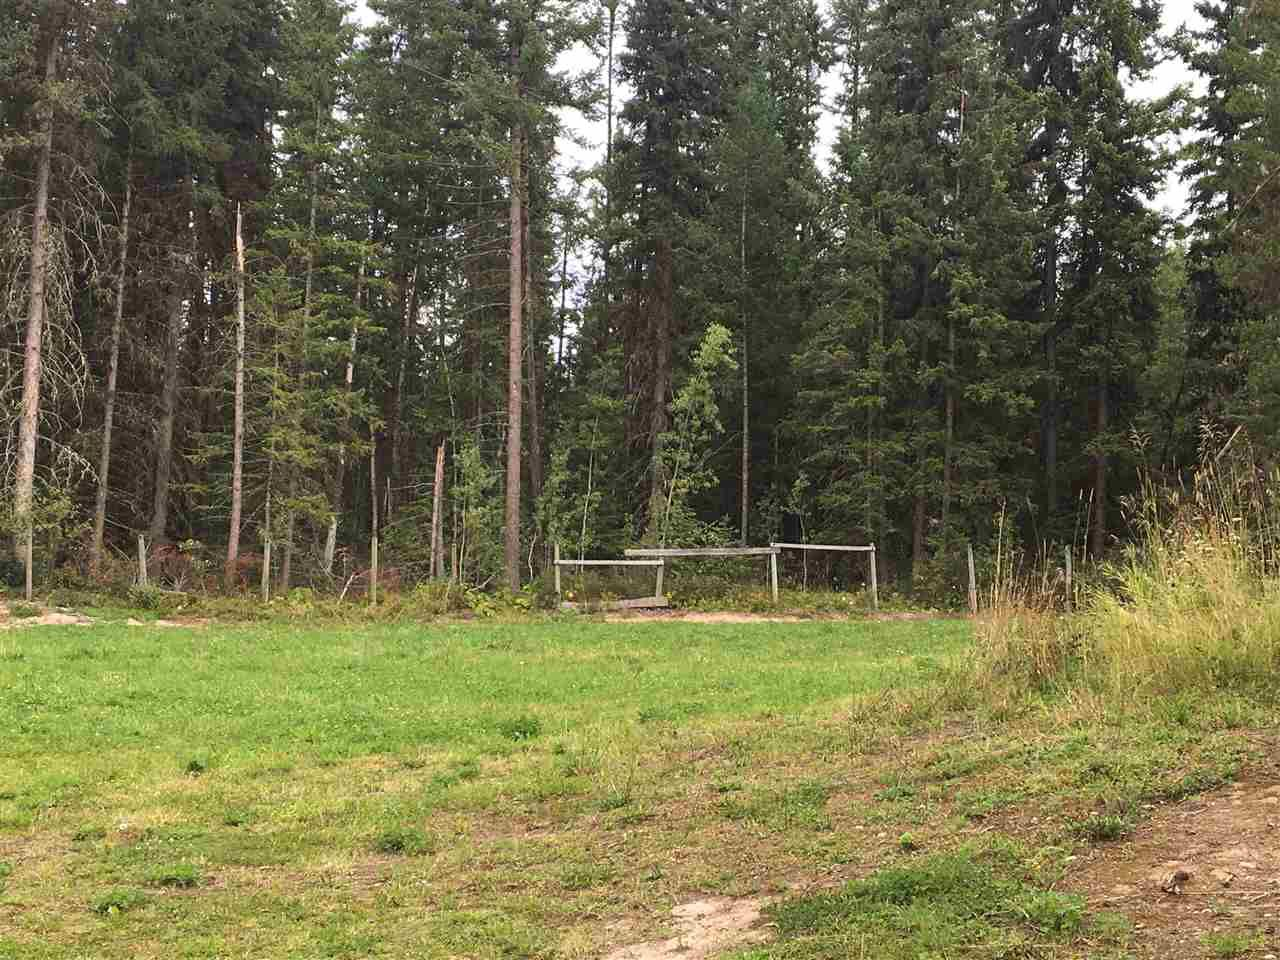 Photo 18: Photos: 2404 N VERNON Road in Quesnel: Bouchie Lake Manufactured Home for sale (Quesnel (Zone 28))  : MLS®# R2492081